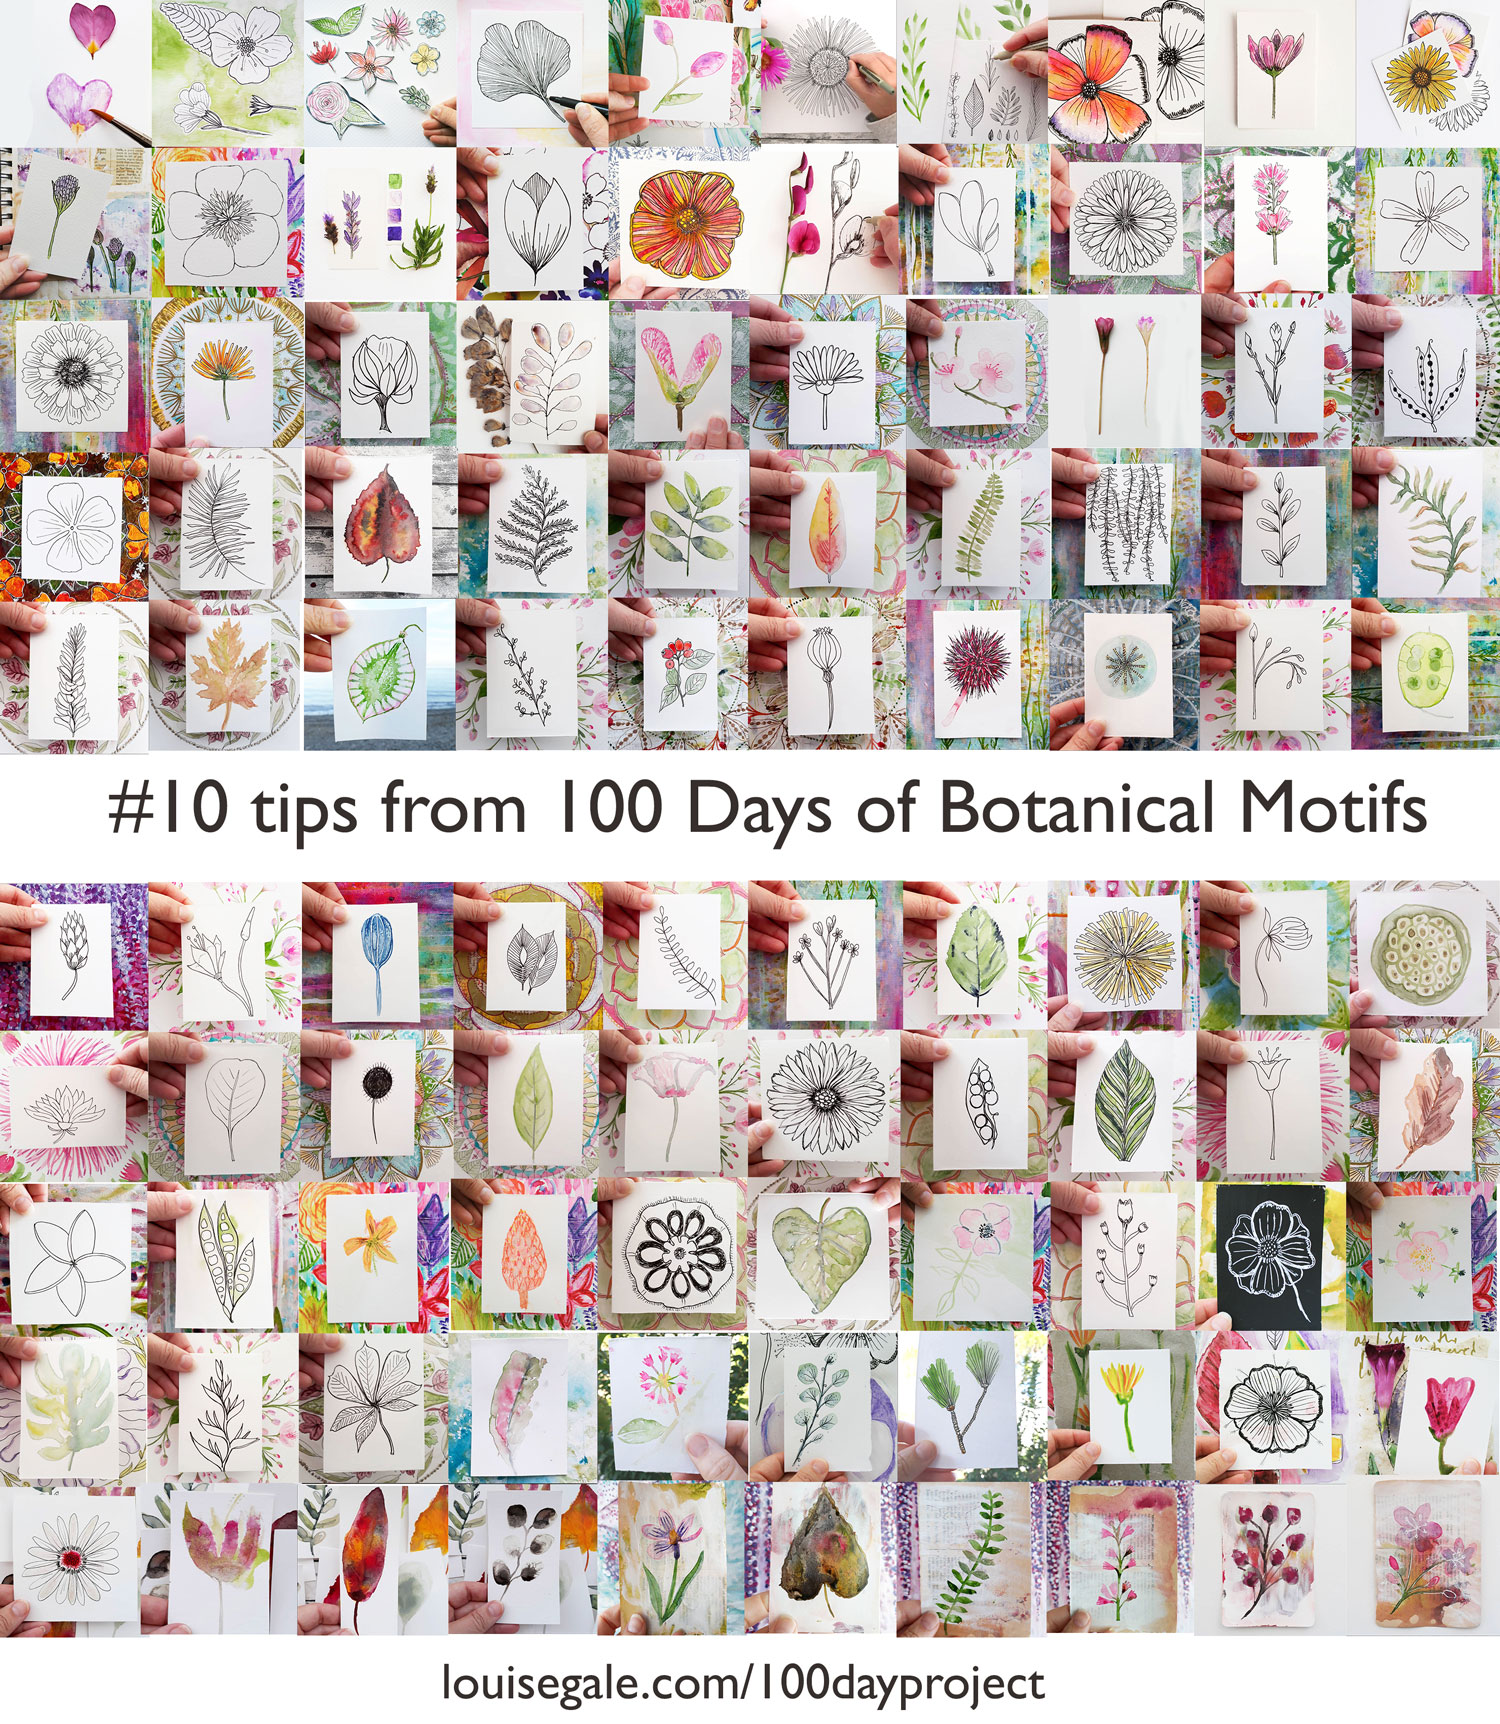 10 tips from the 100 days of botanical motifs with Louise Gale